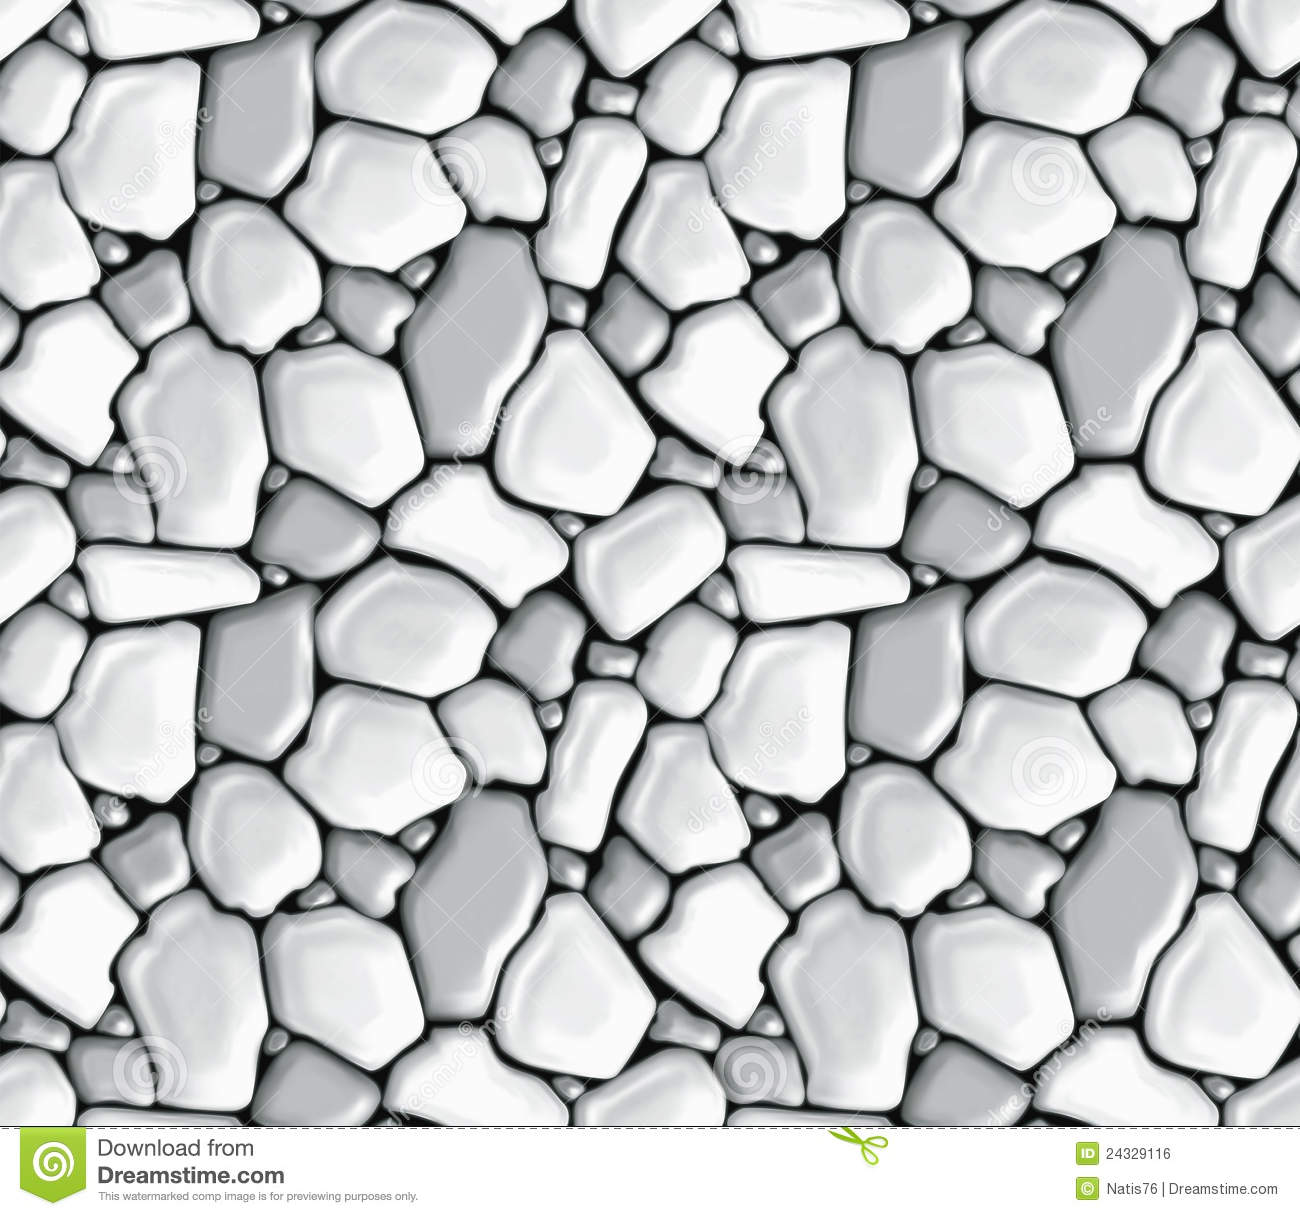 Stone wall clipart free.